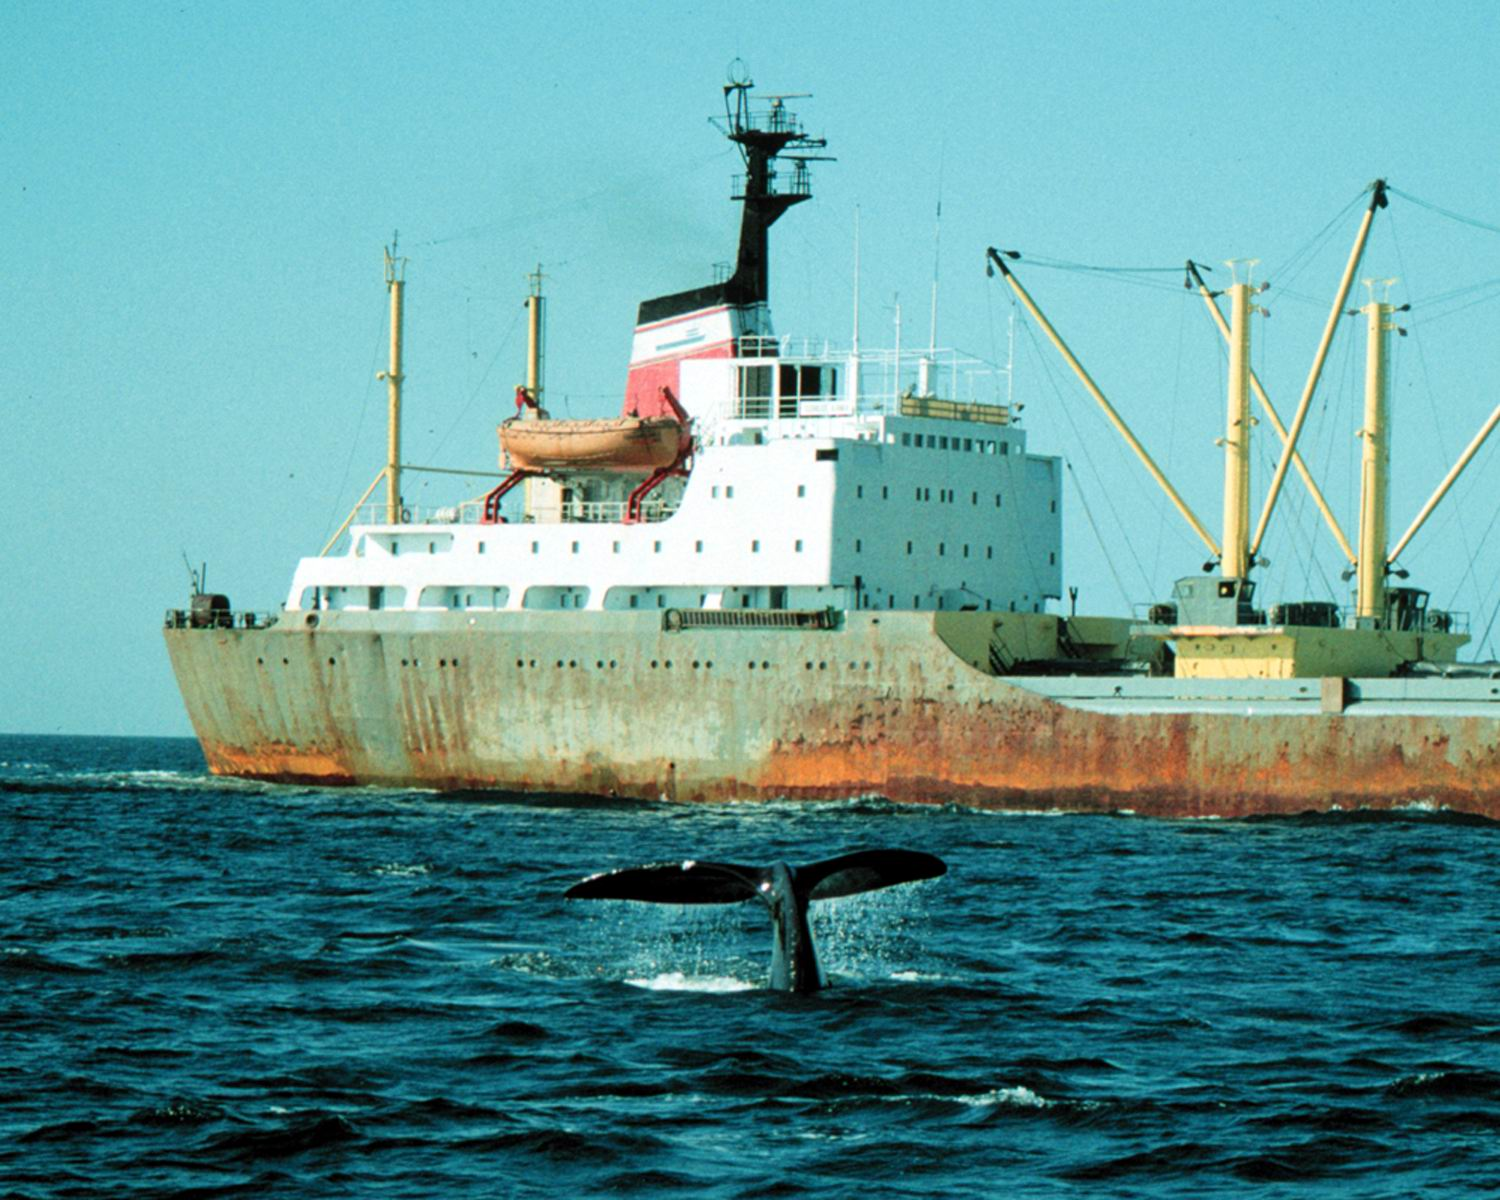 North Atlantic right whales and ocean-going vessels often cross paths.<div class='credit'><strong>Credit:</strong> North Atlantic right whales and ocean-going vessels often cross paths.</div>